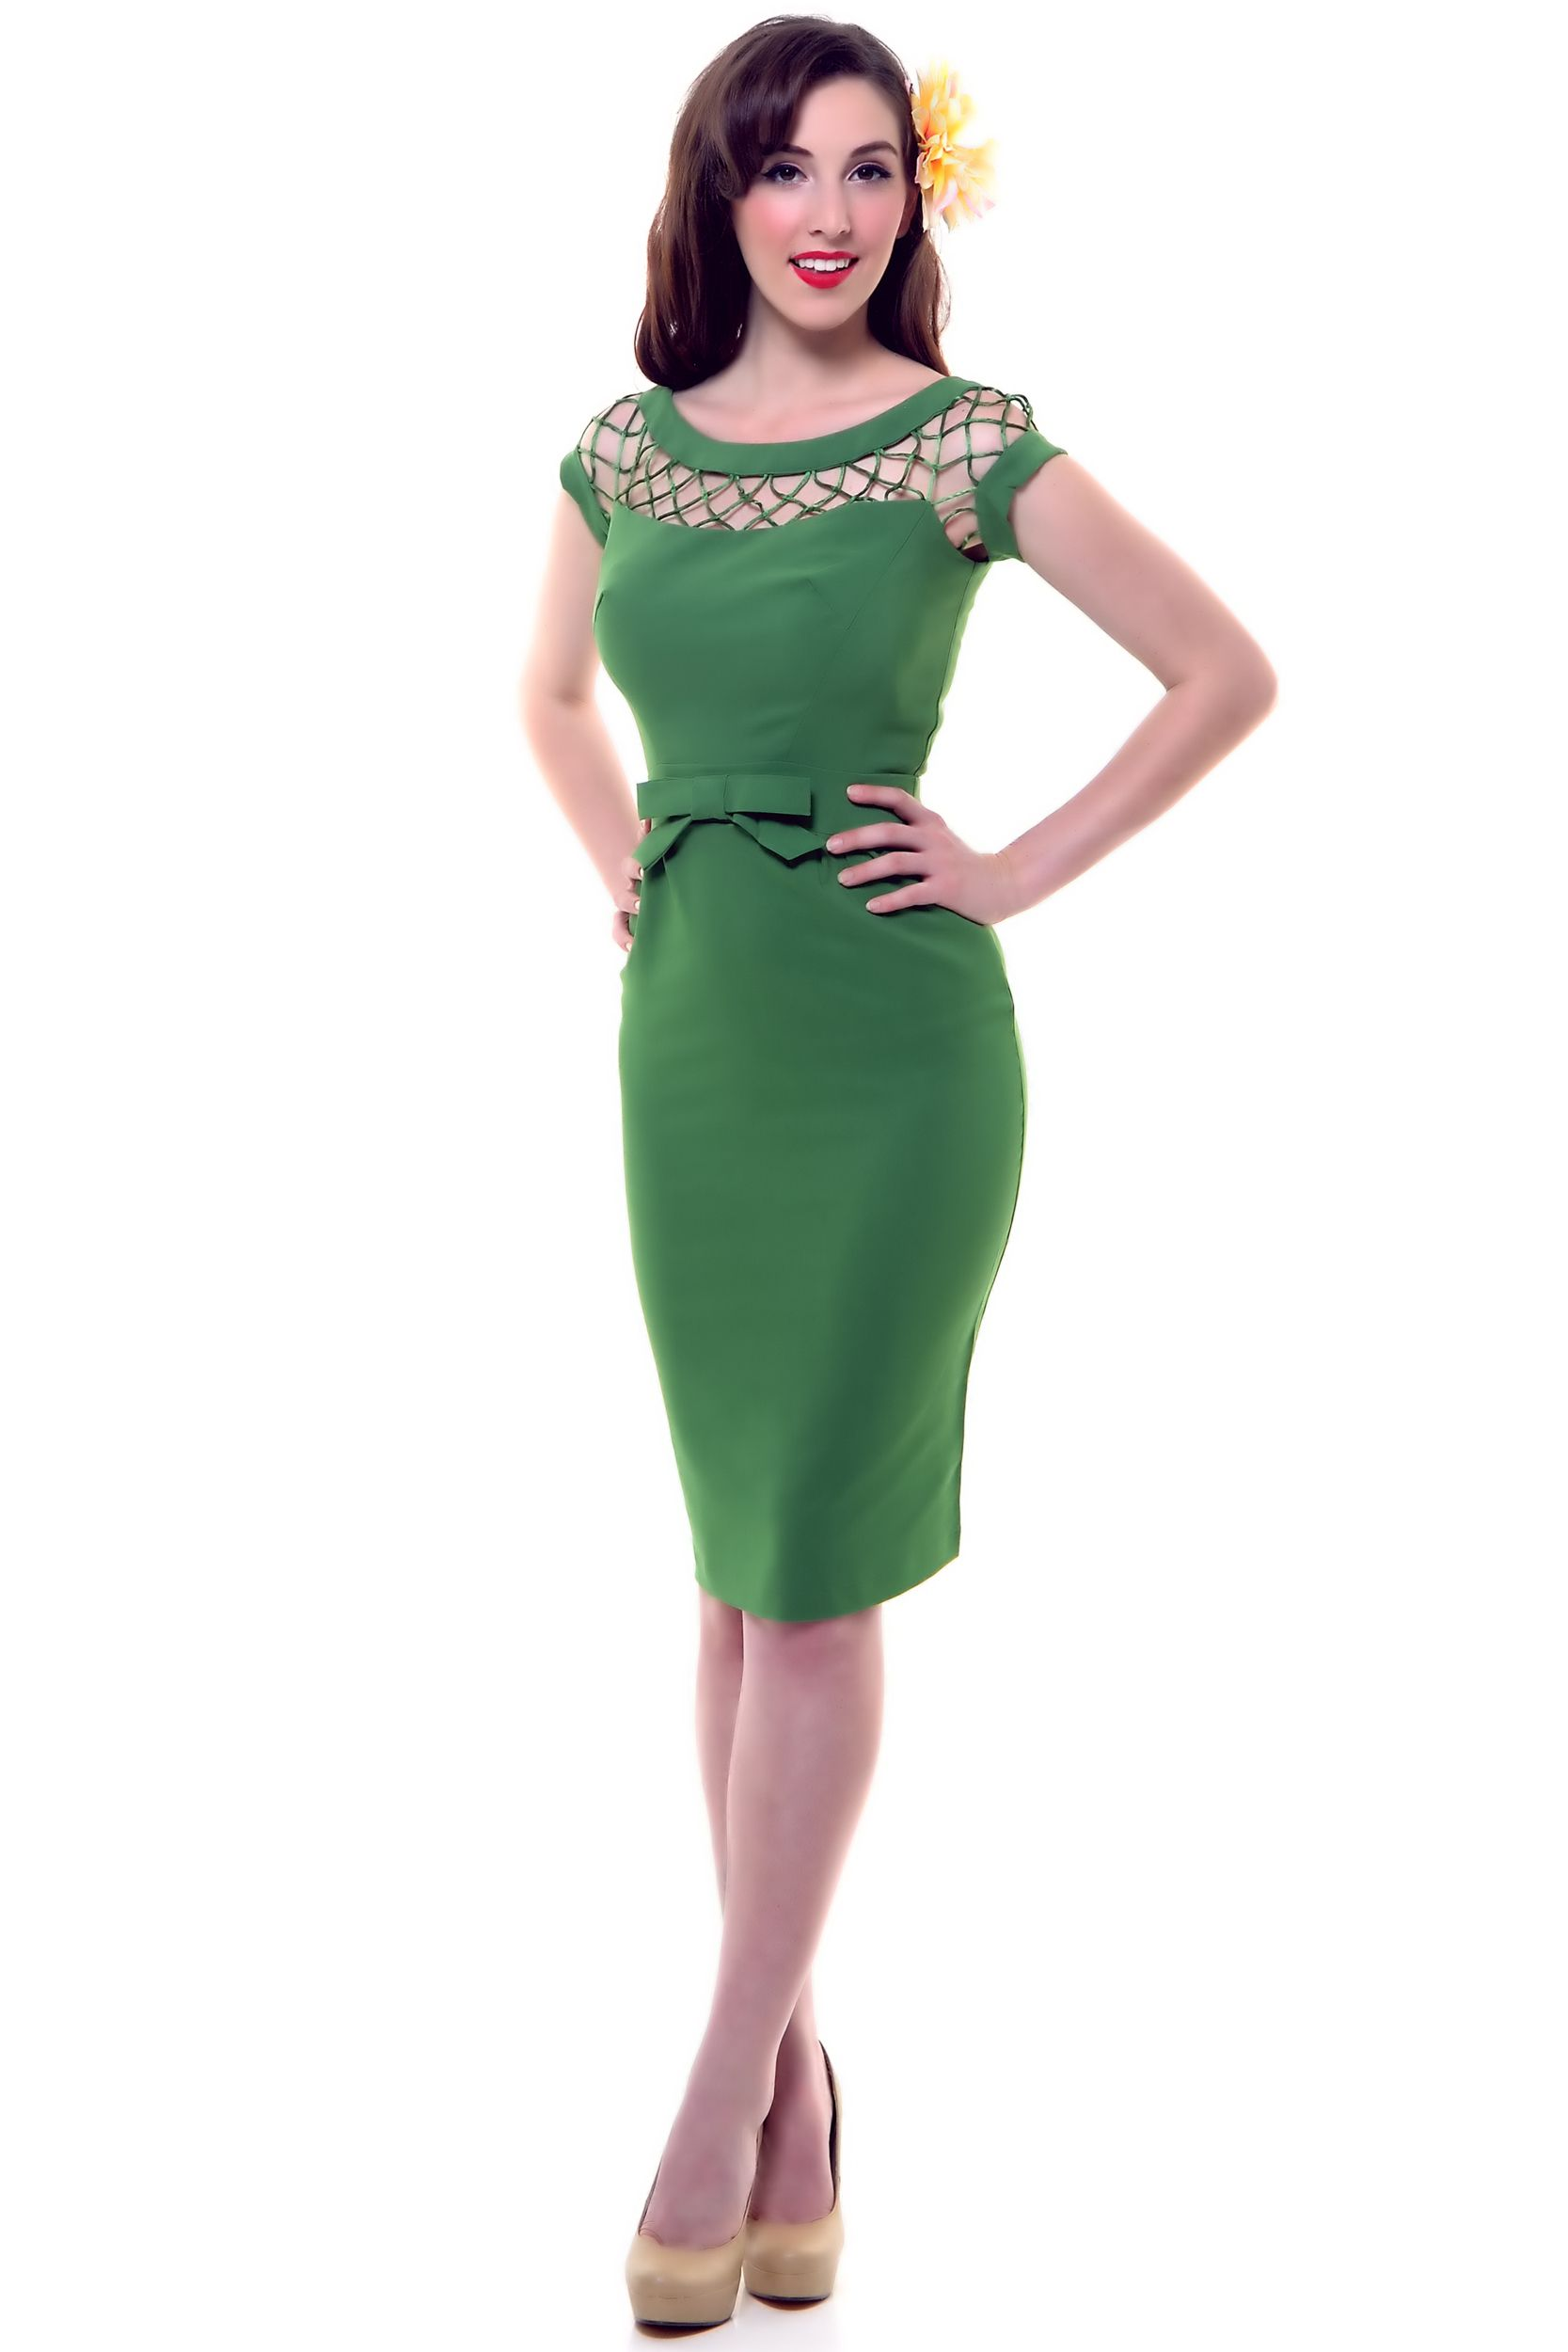 Green Alika Pencil Skirt Wiggle Dress - Unique Vintage ...